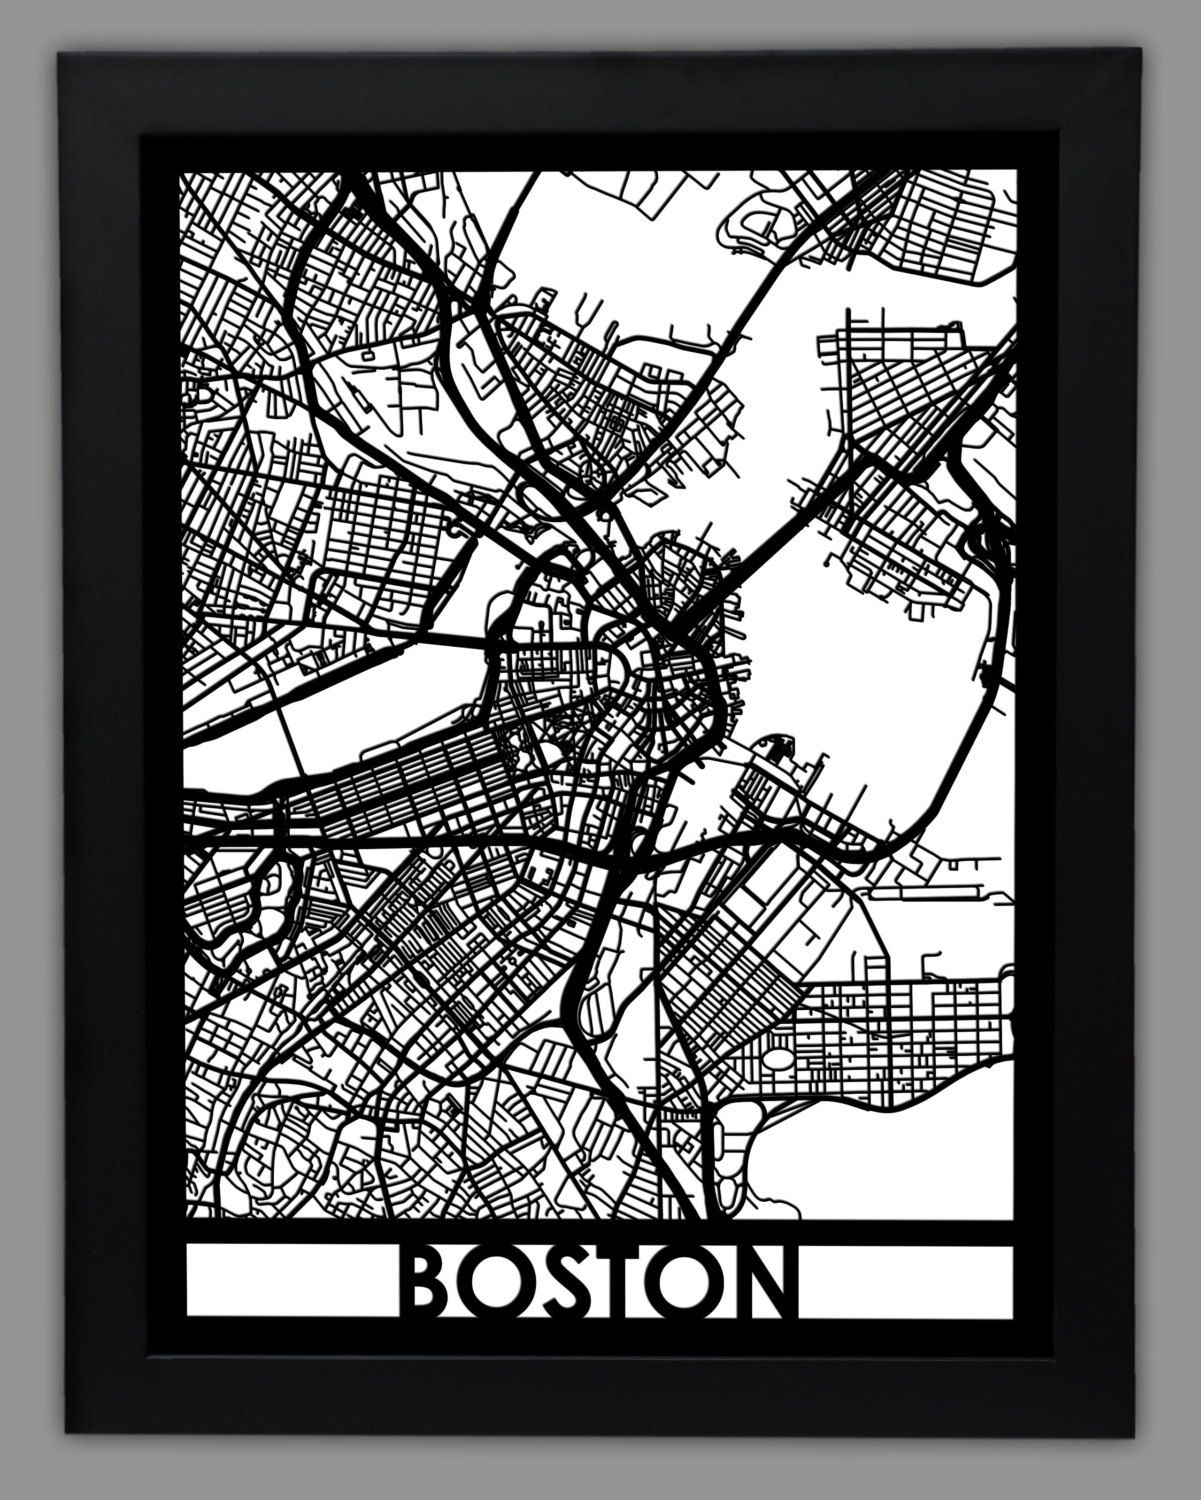 "Boston Wall Art boston laser cut map | 18x24"" framed city map 